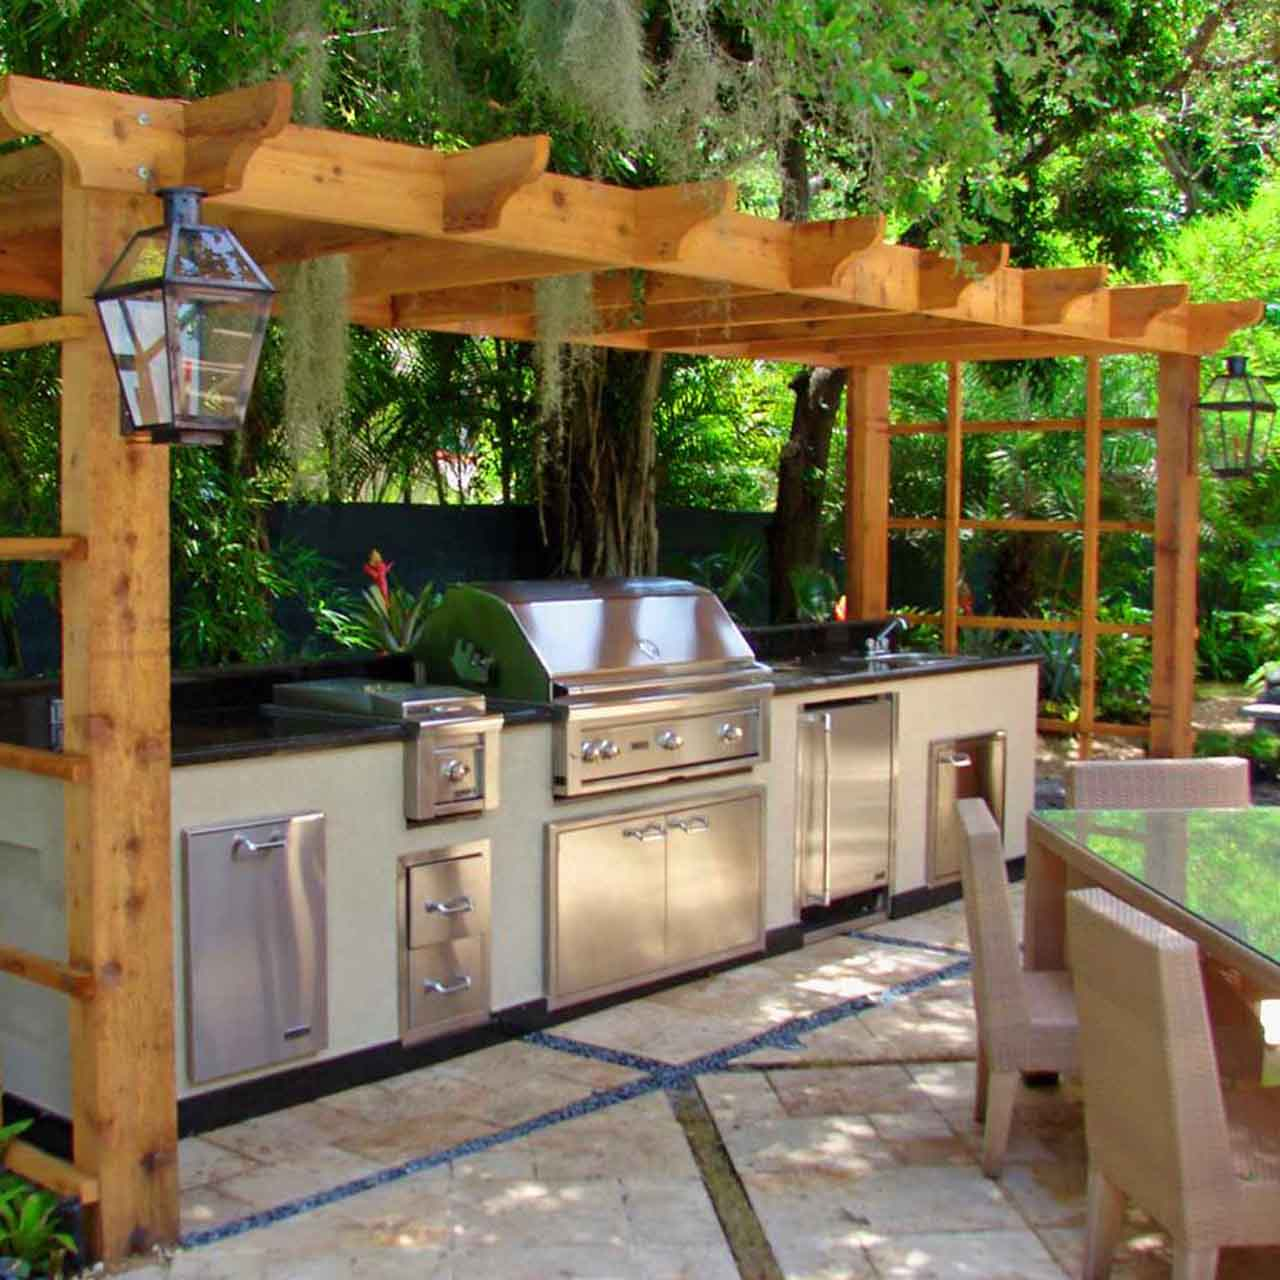 Outdoor Kitchen Layout - How to Welcome the Christmas ... on Patio Kitchen Set id=96370